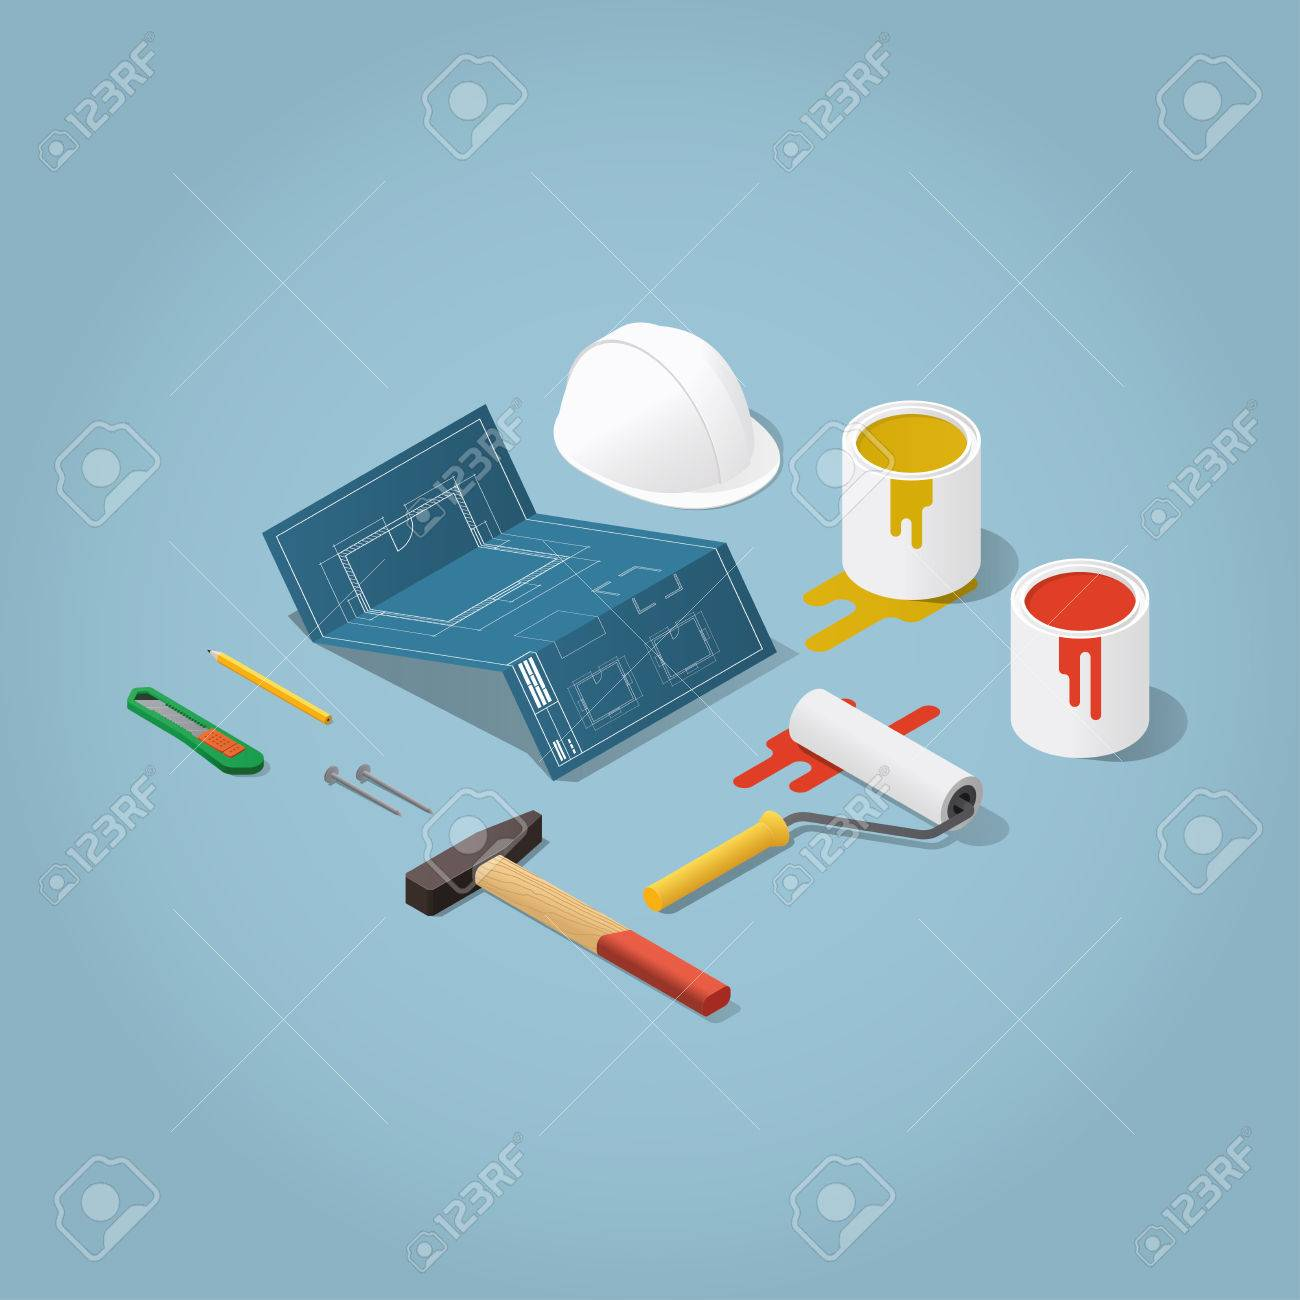 Isometric vector apartment room renovation illustration toolbox isometric vector apartment room renovation illustration toolbox set blueprint plan of room buckets malvernweather Image collections